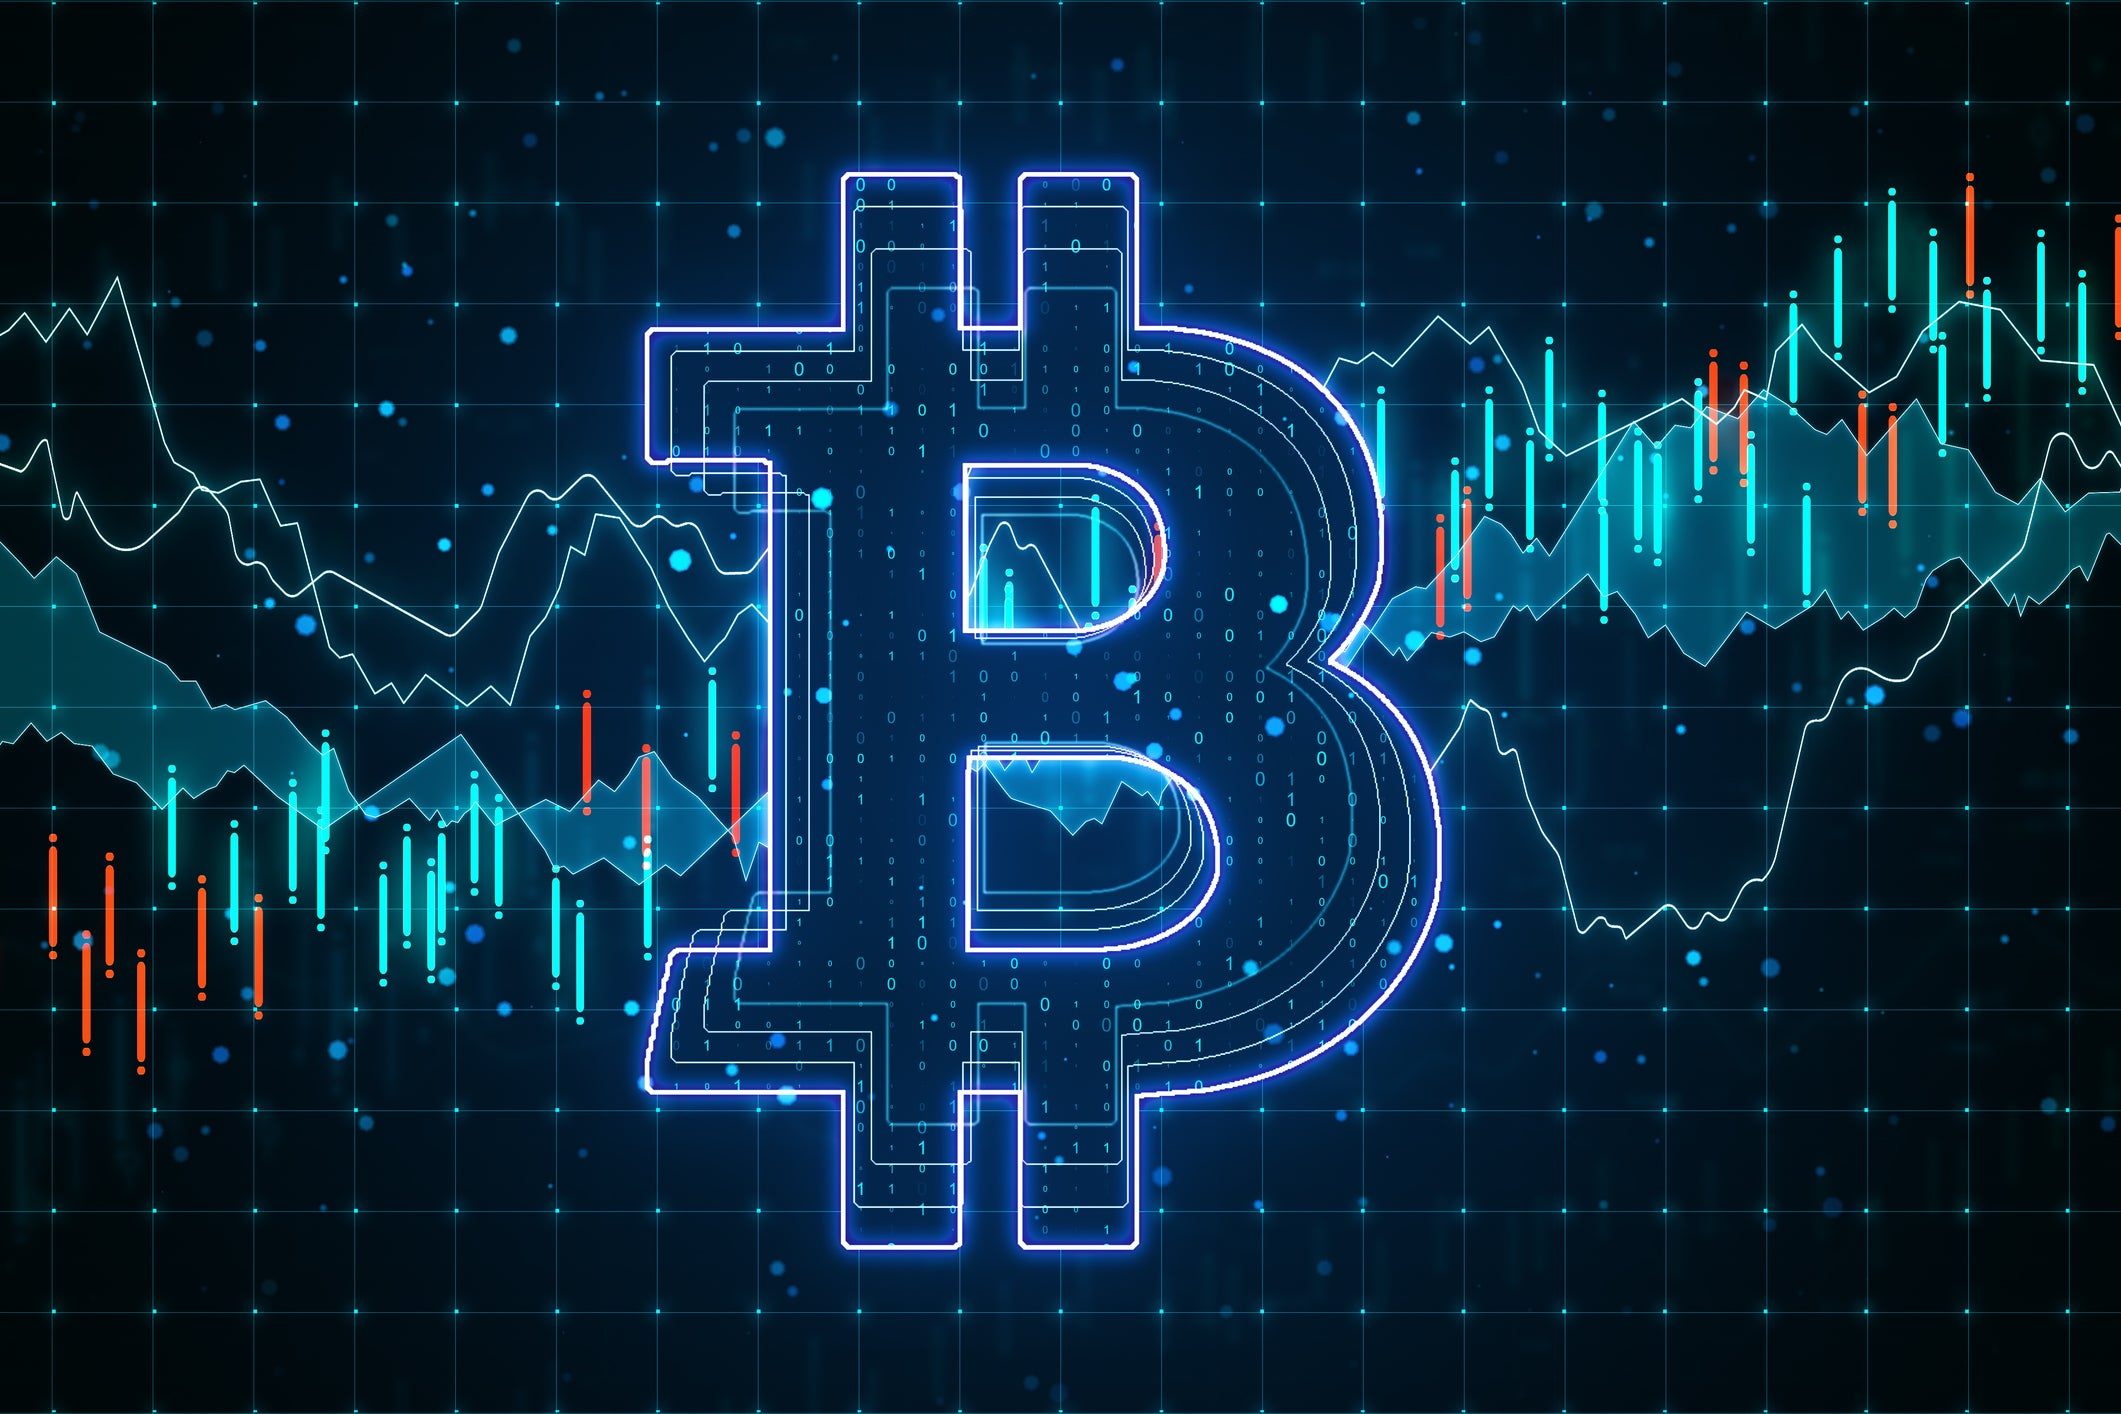 Bitcoin at $50,000: The Good, the Bad, and the Unknown